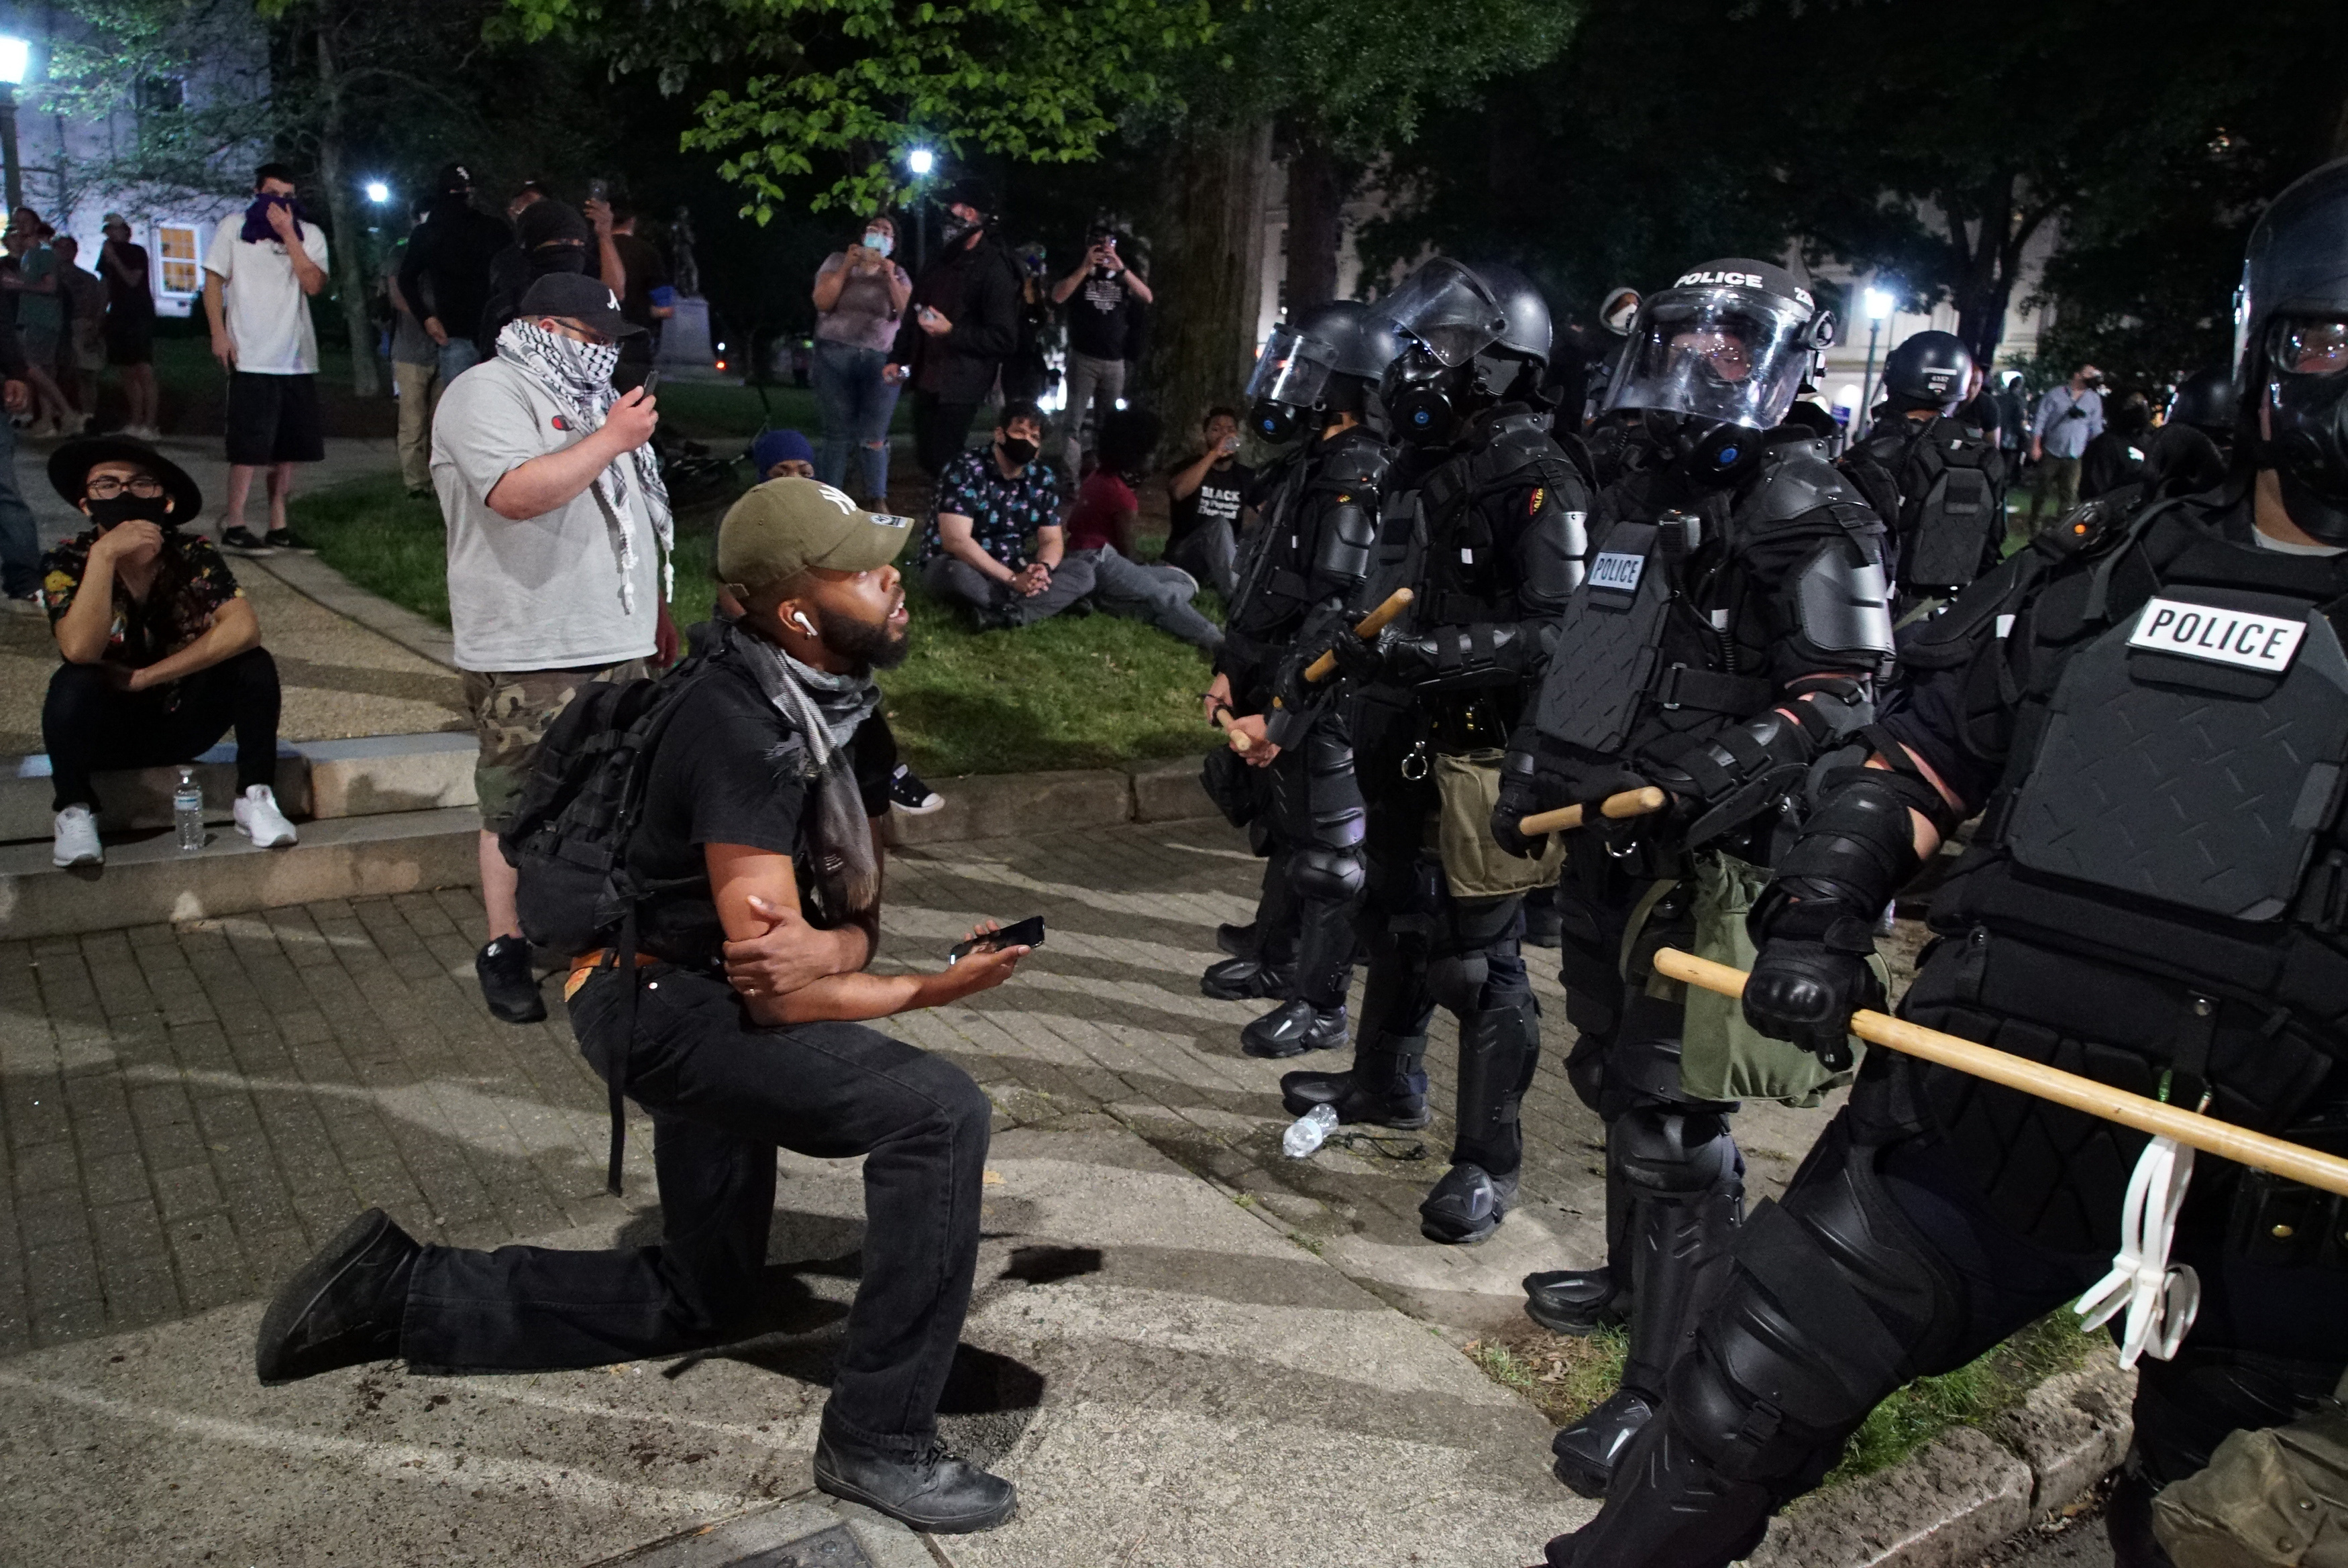 A protester takes a knee as he tries to talk with police guarding the old state capitol in Raleigh, N.C., on Sunday, May 31, 2020. It was the second day of protests in the North Carolina capital following the death of Minnesotan George Floyd while in police custody. (AP Photo/Allen G. Breed)